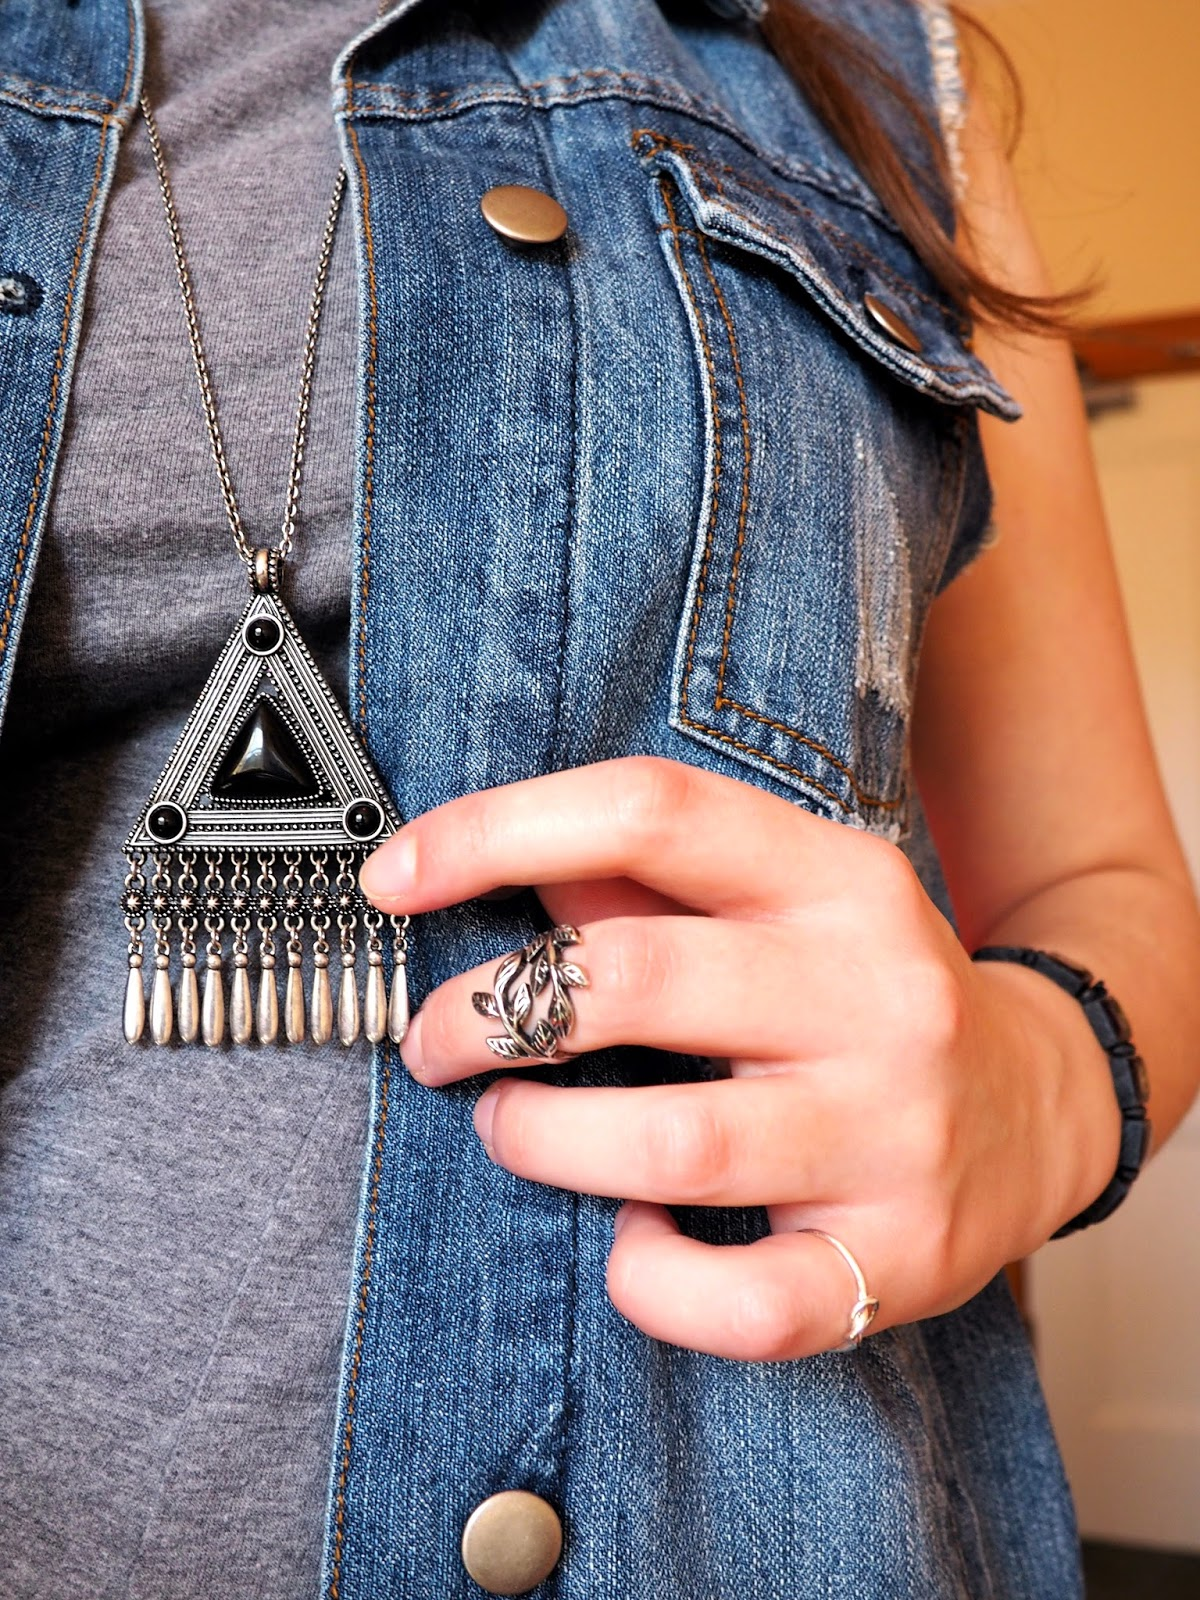 Distressed Denim outfit jewellery details | black and silver triangle pendant necklace, silver leaf midi ring, silver knot ring